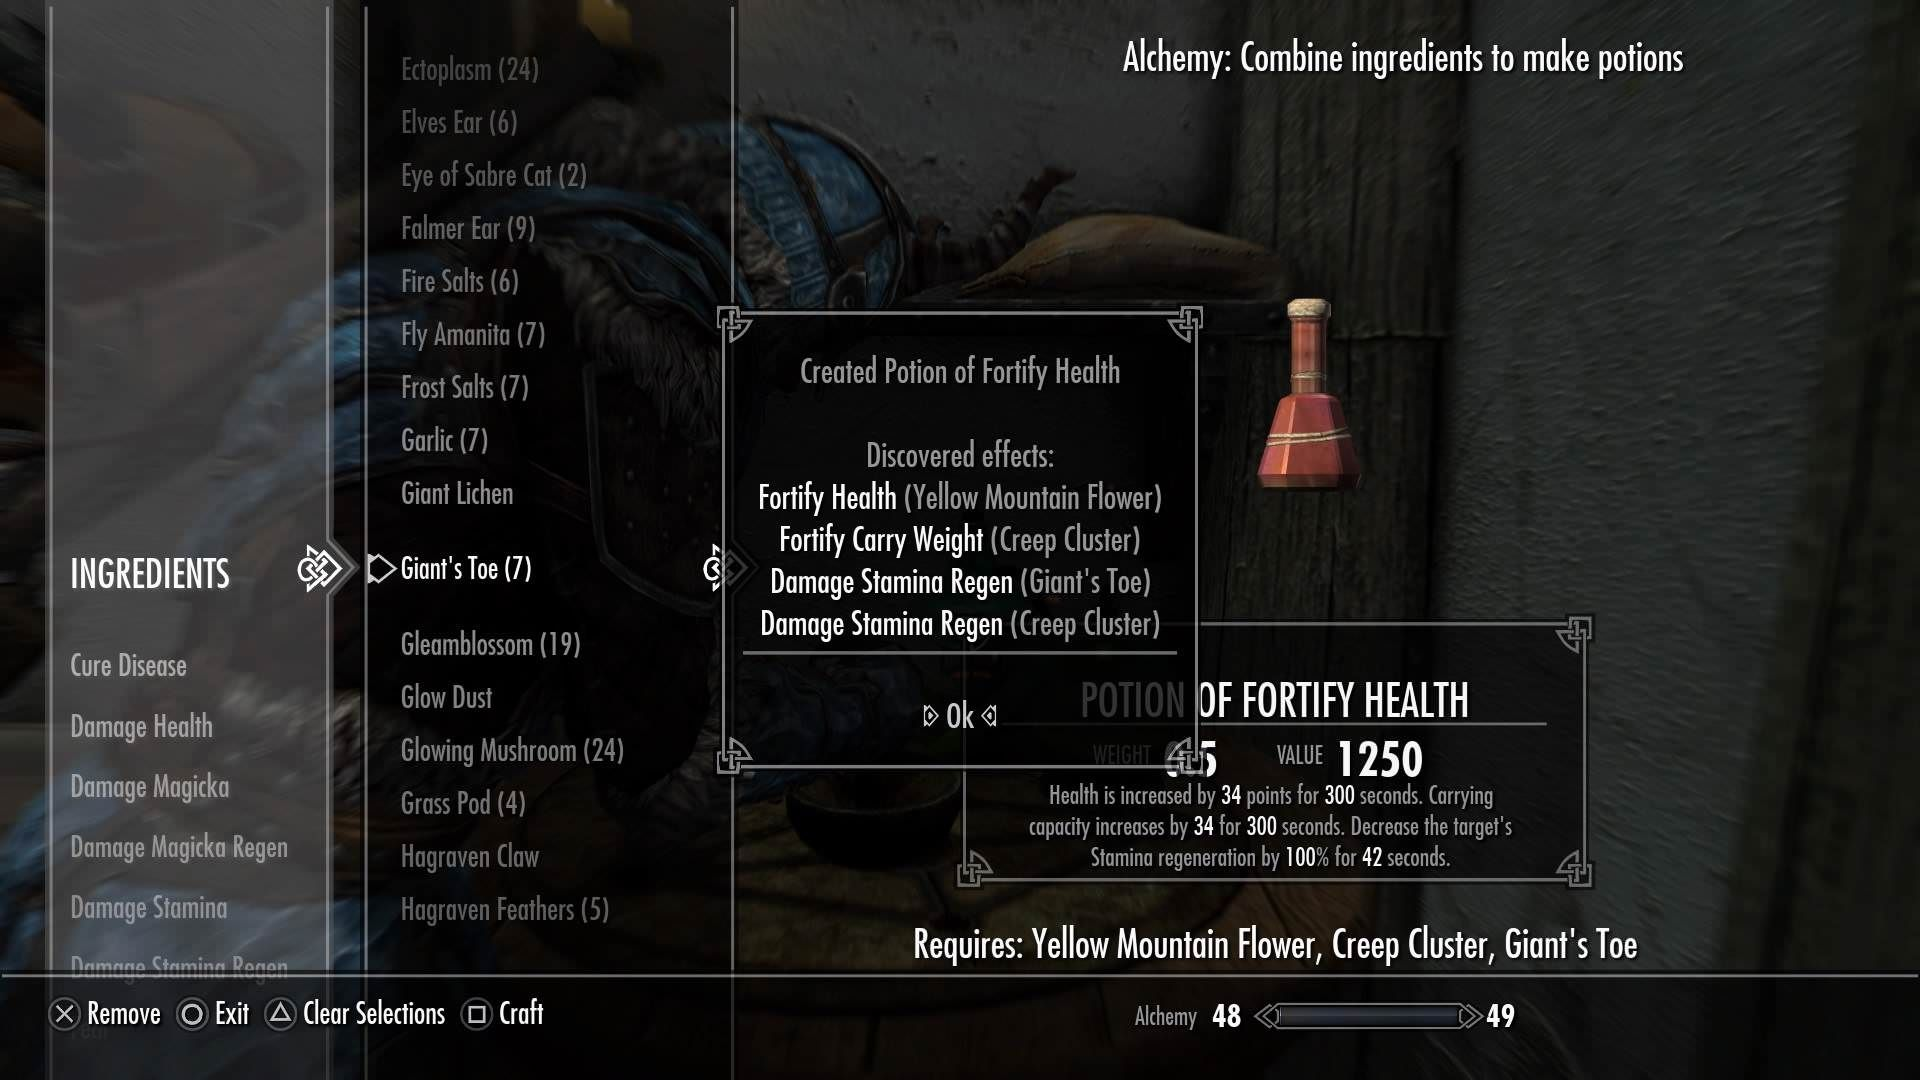 Im Pretty Proud Of This Potion Games Skyrim Elderscrolls Be3